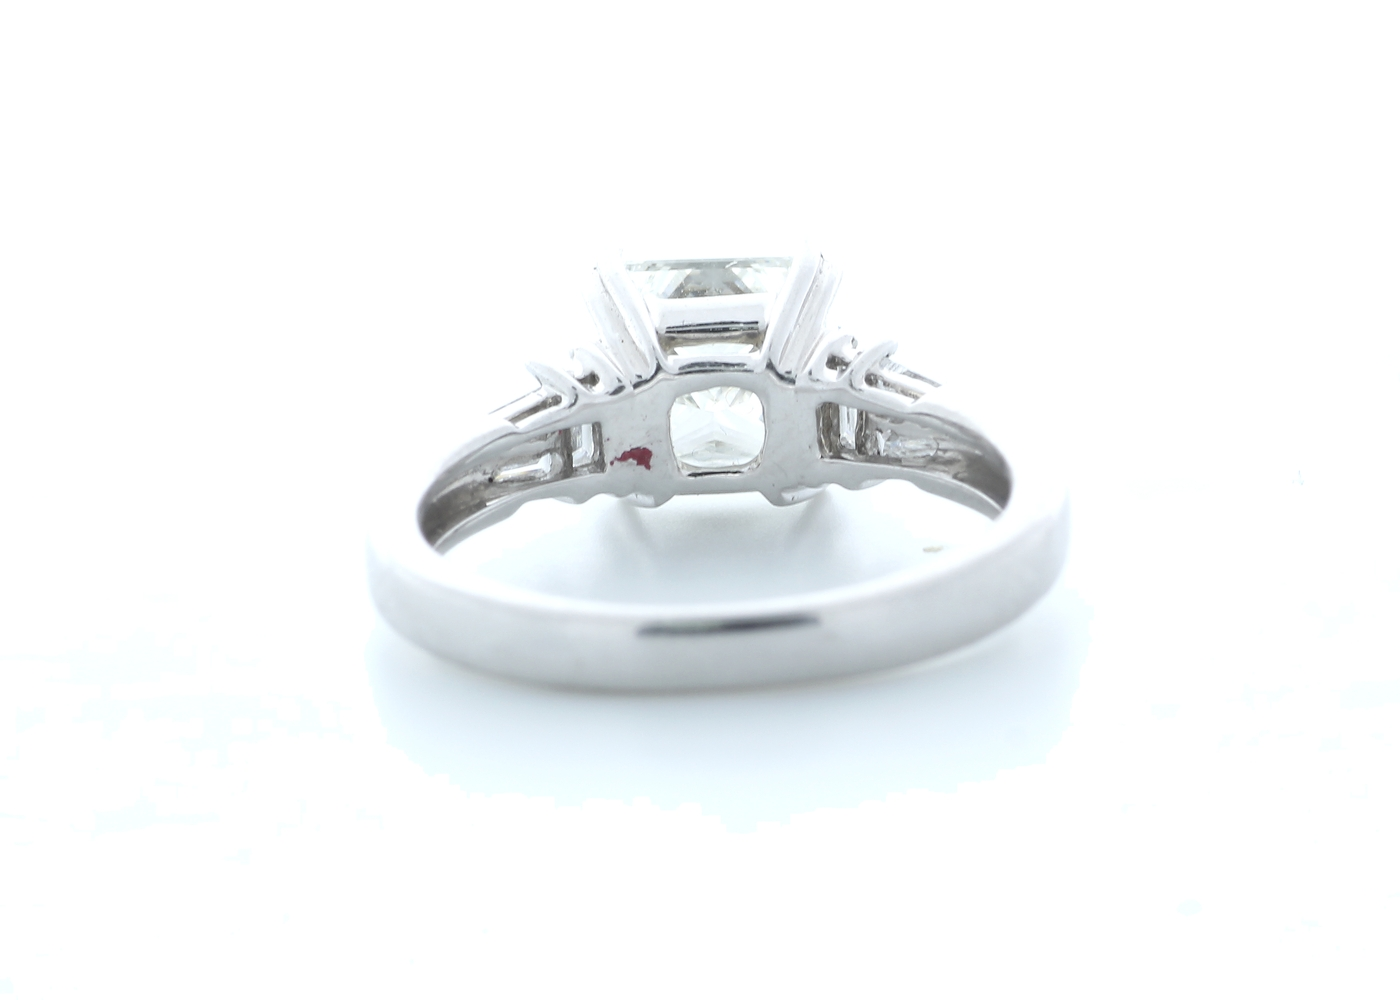 18ct White Gold Princess Cut With Stone Set Shoulders Diamond Ring 1.66 (1.51) Carats - Image 3 of 5